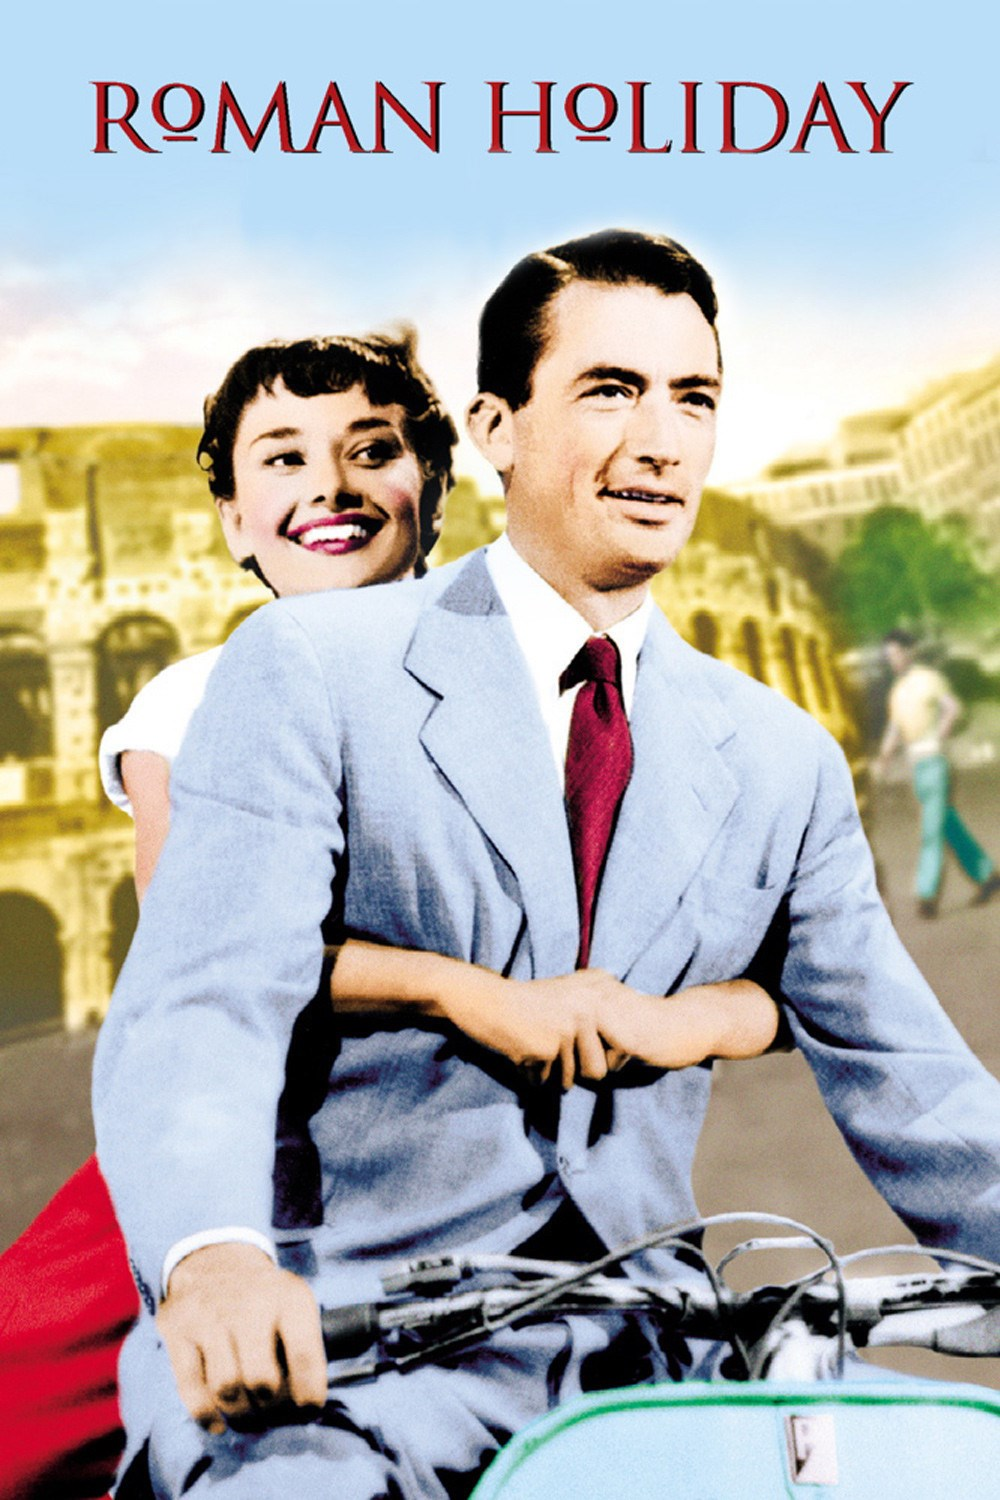 Image result for roman holiday 1953 movie